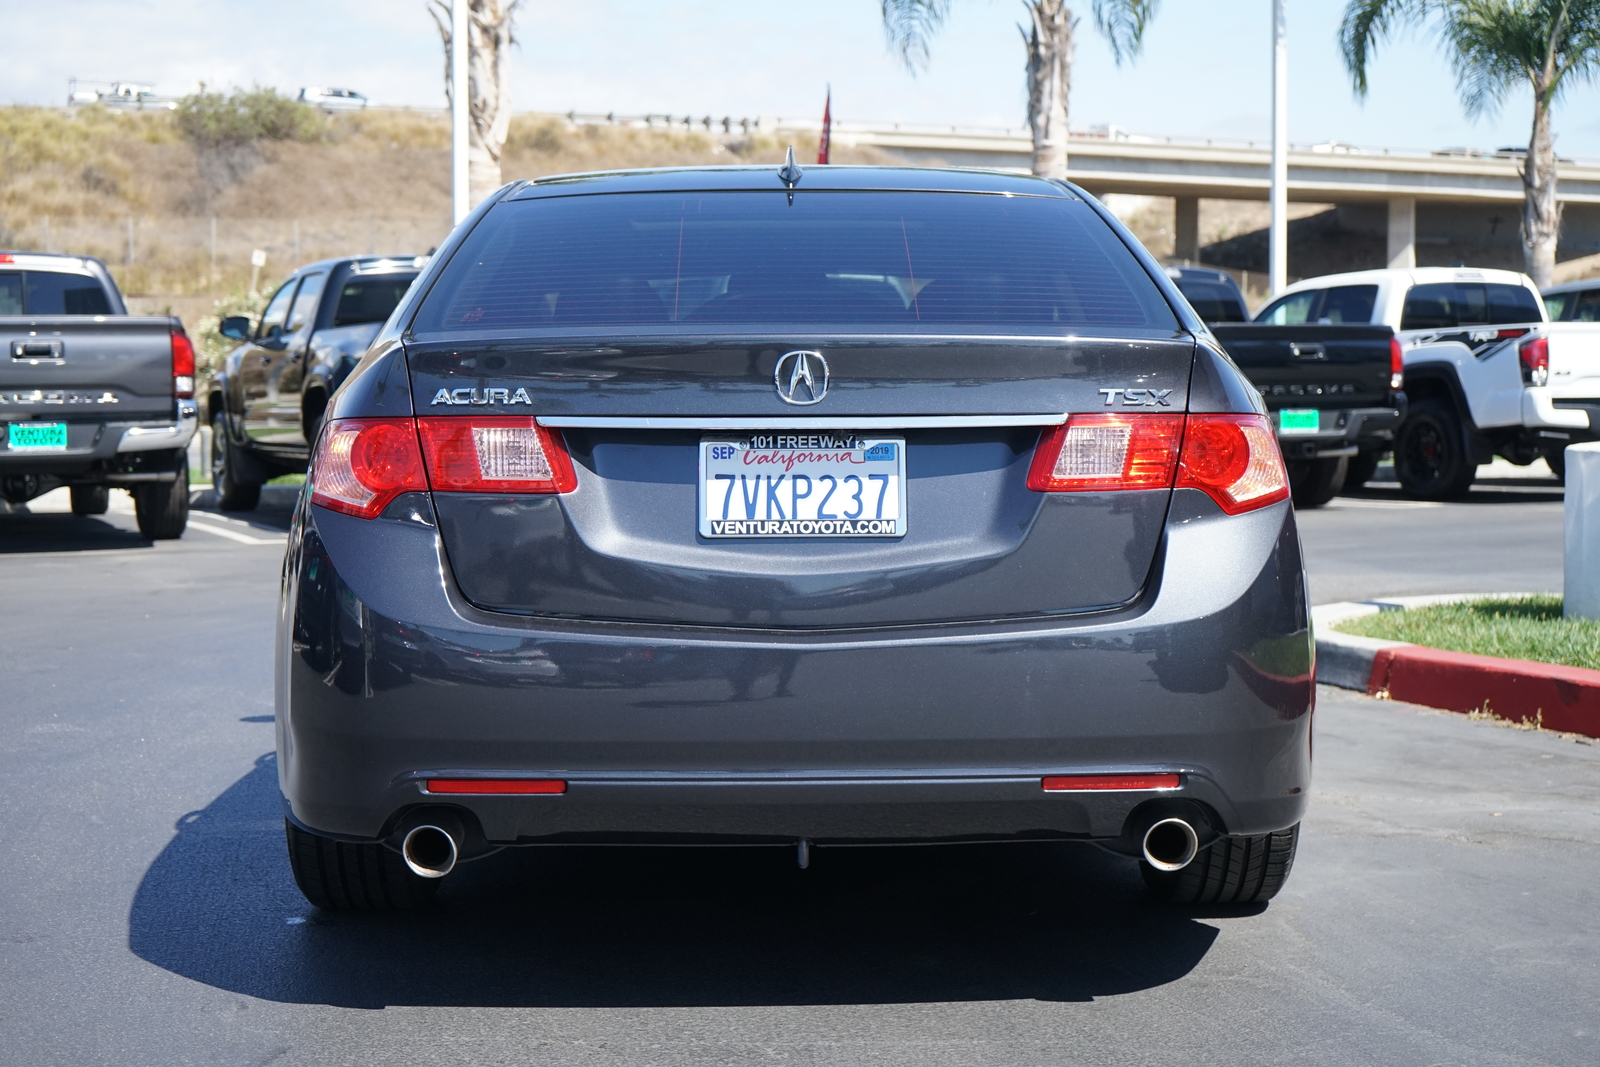 Pre-Owned 2013 Acura TSX 4dr Sdn I4 Auto